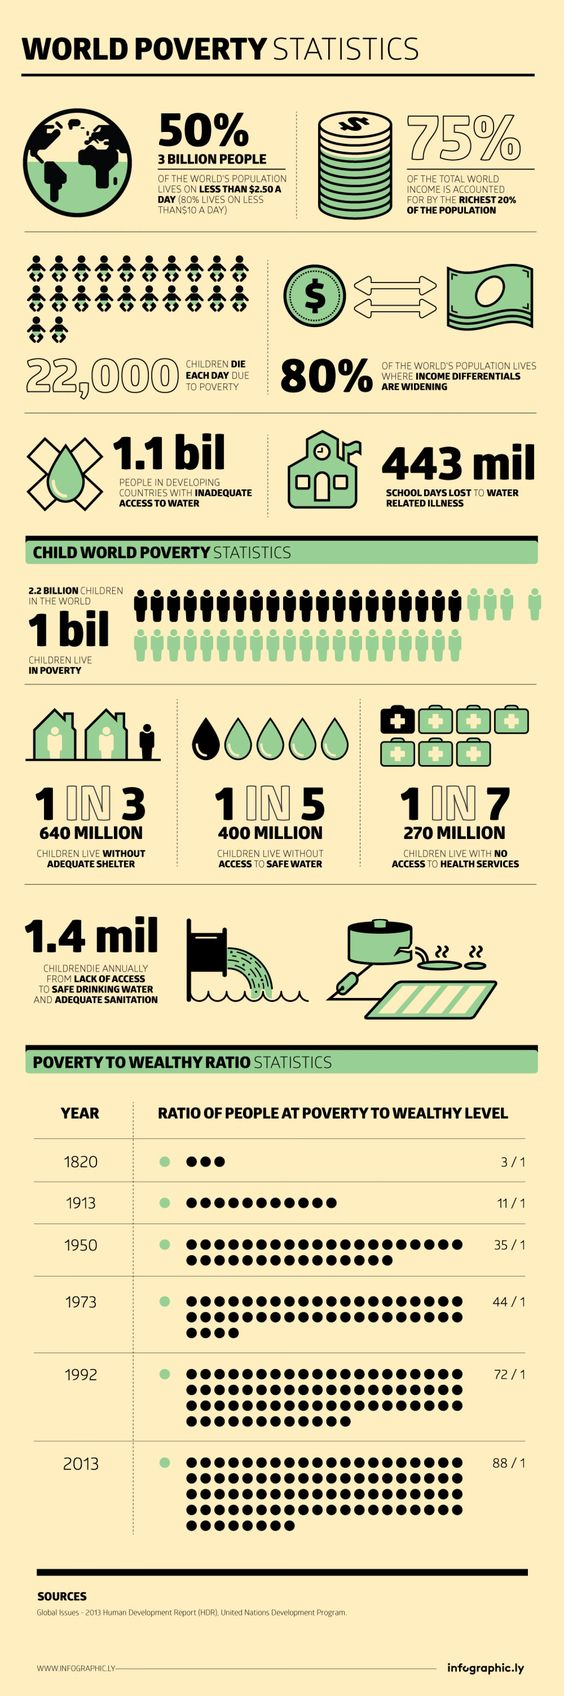 global issues some hard hitting facts and statistics on poverty global issues some hard hitting facts and statistics on poverty presented in the human development